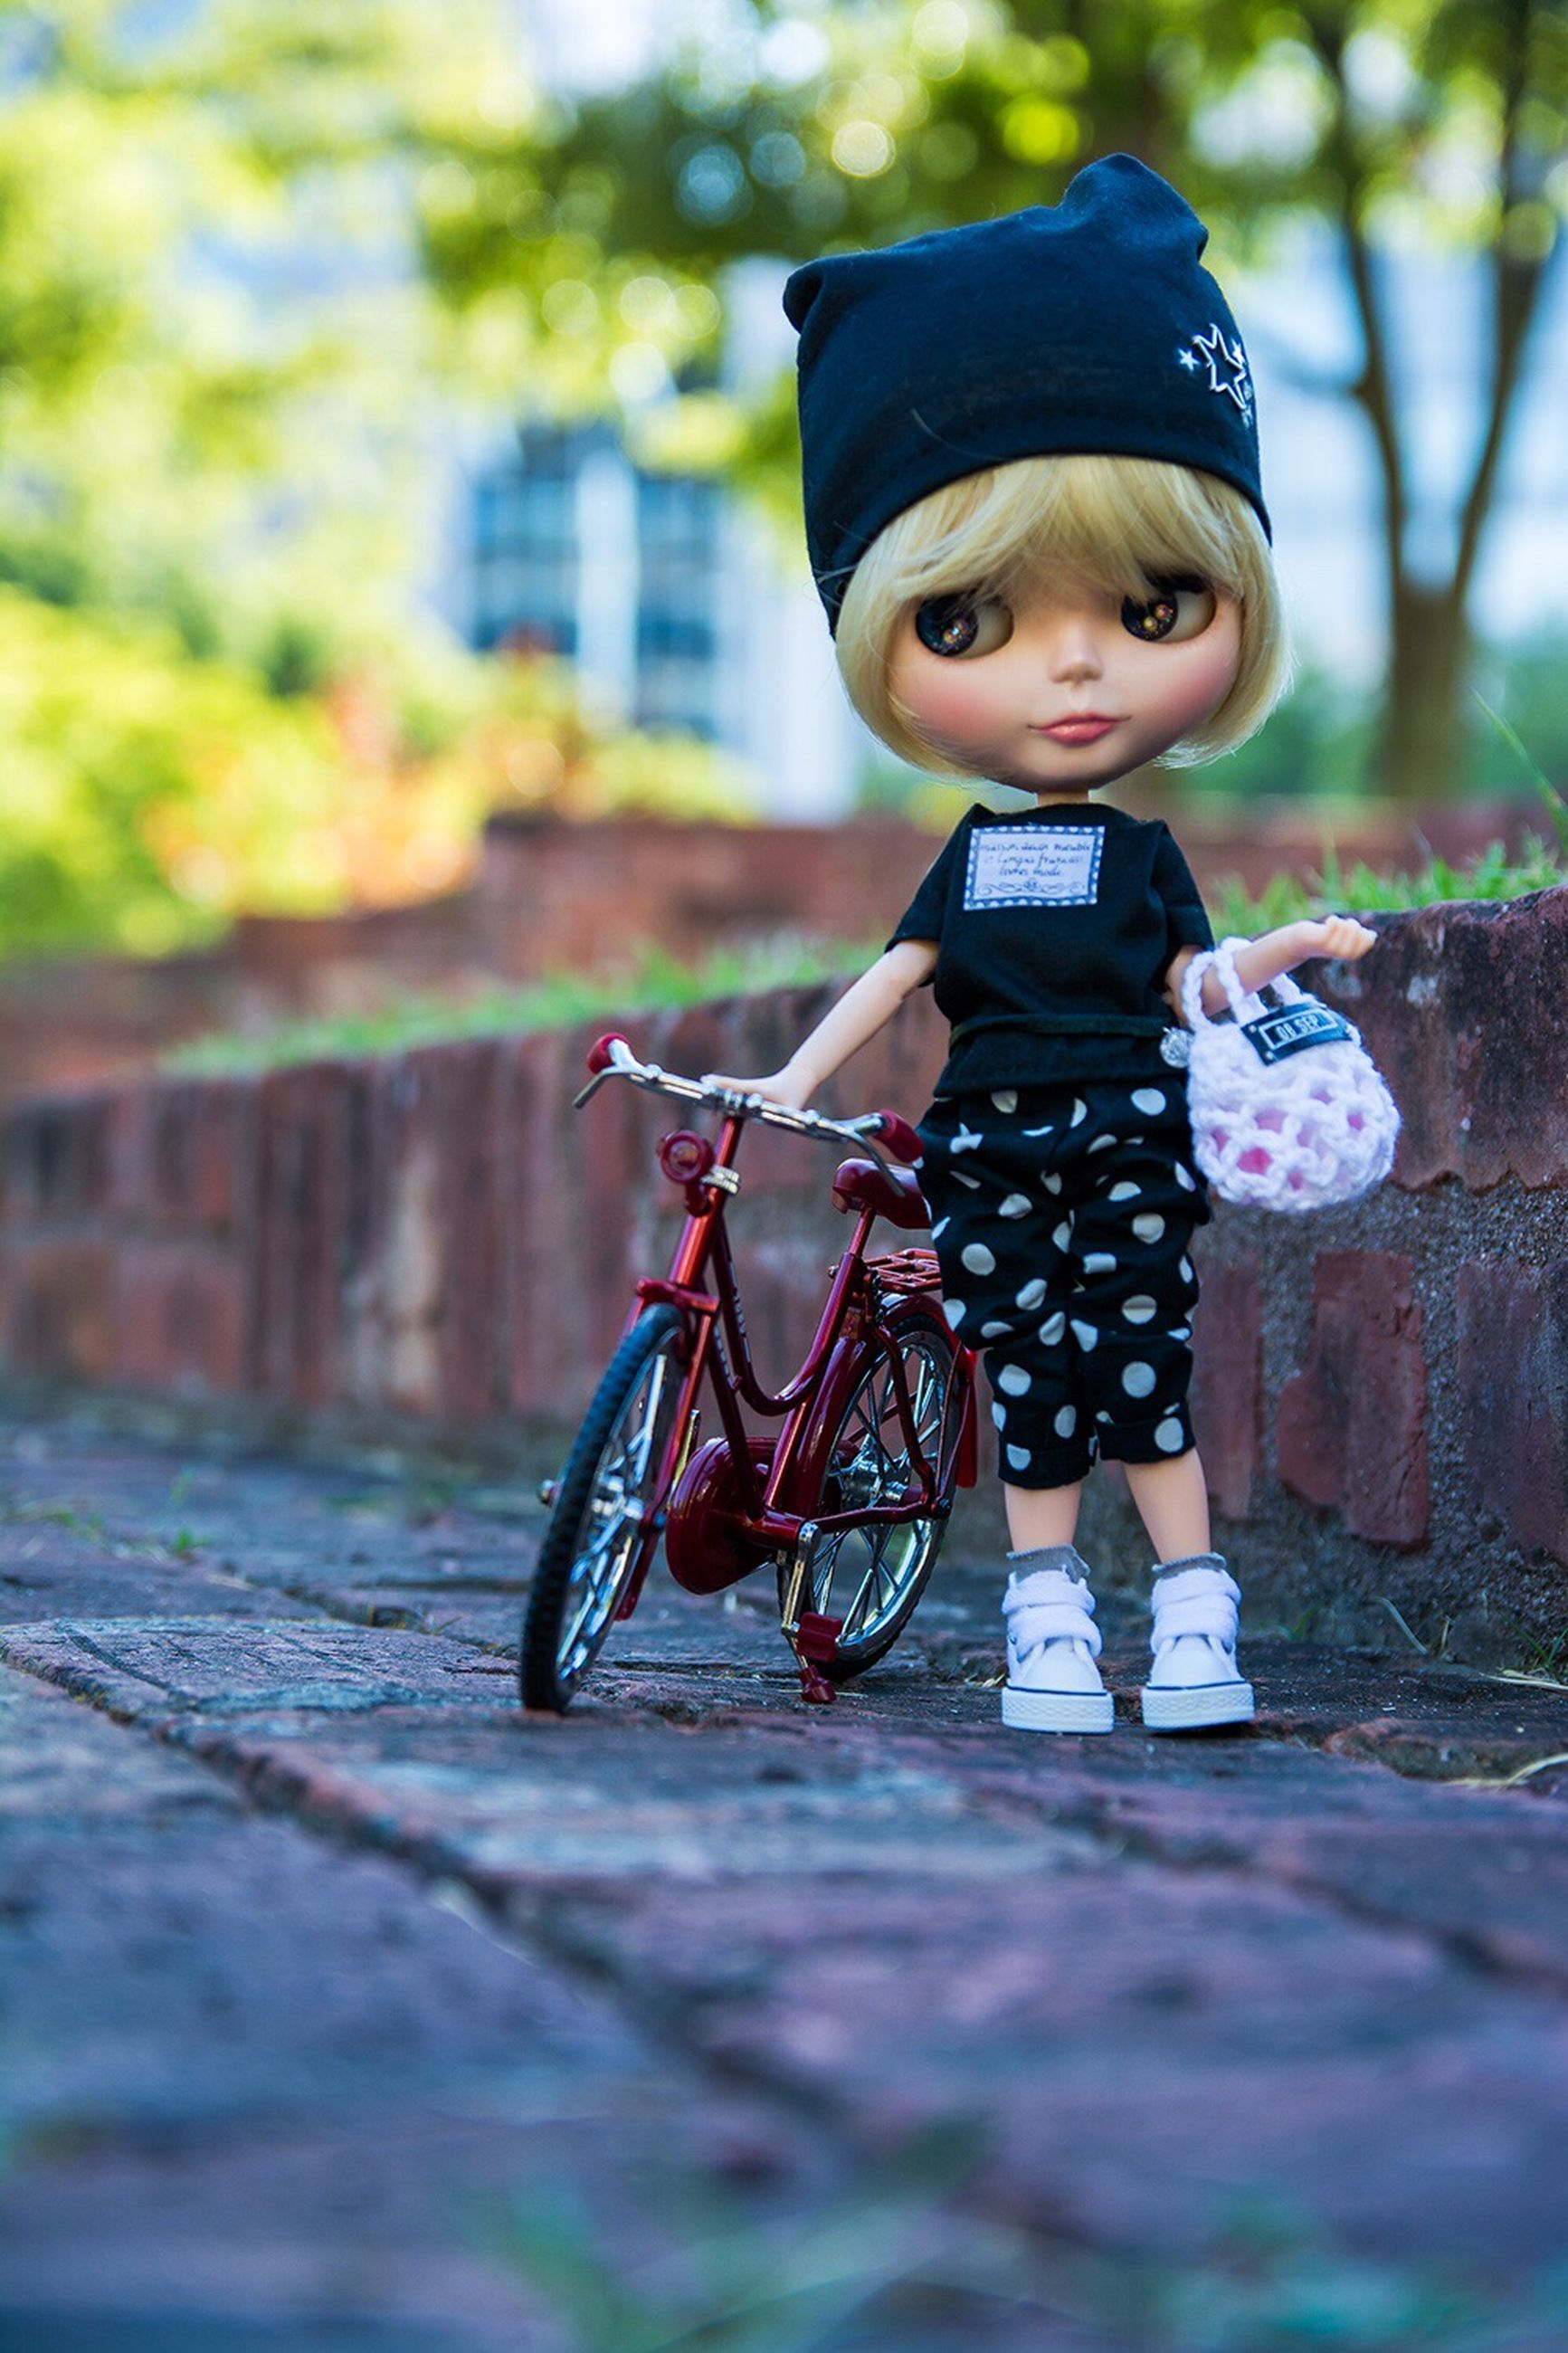 childhood, bicycle, leisure activity, elementary age, selective focus, lifestyles, cute, boys, transportation, casual clothing, holding, full length, mode of transport, riding, surface level, person, looking at camera, focus on foreground, day, innocence, outdoors